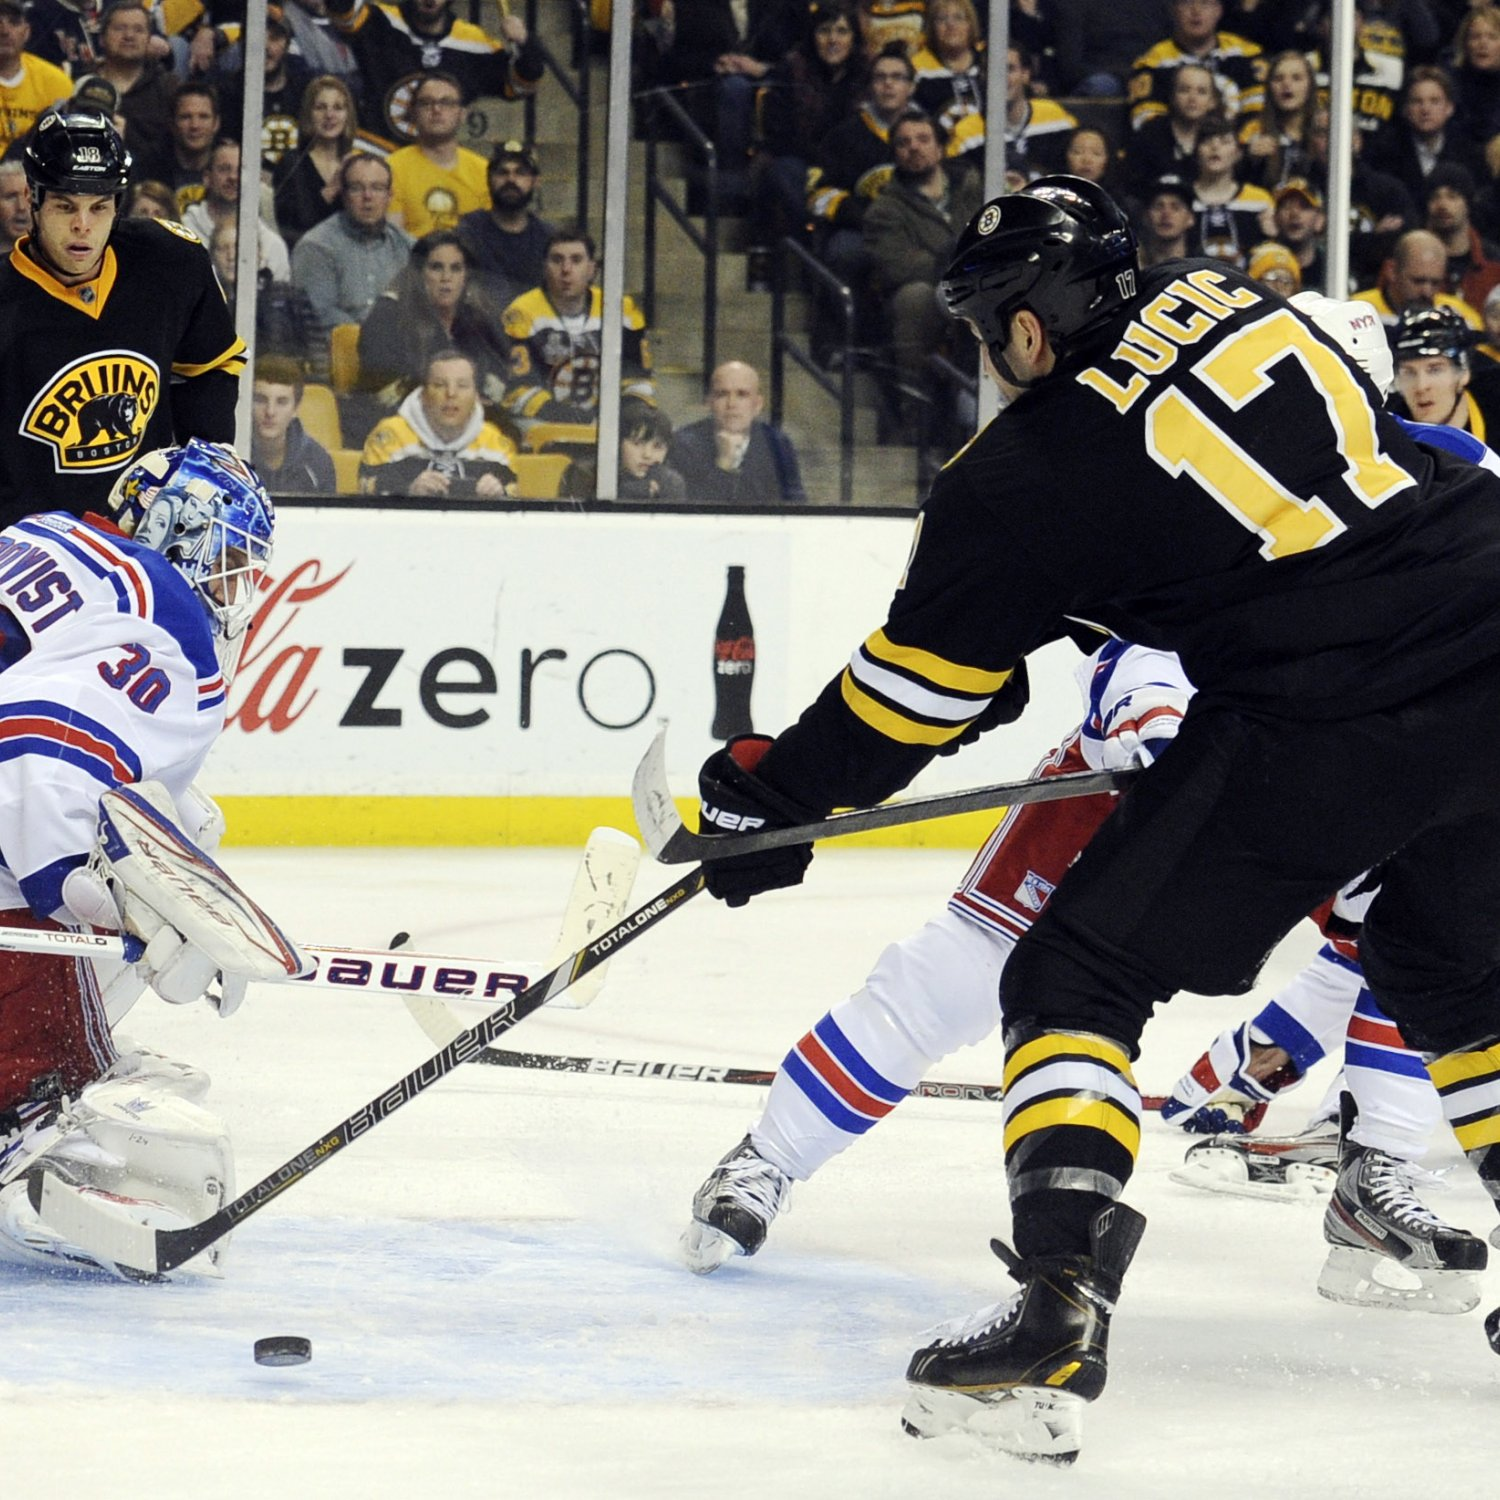 NHL Playoff Schedule 2013: When And Where To Catch Action